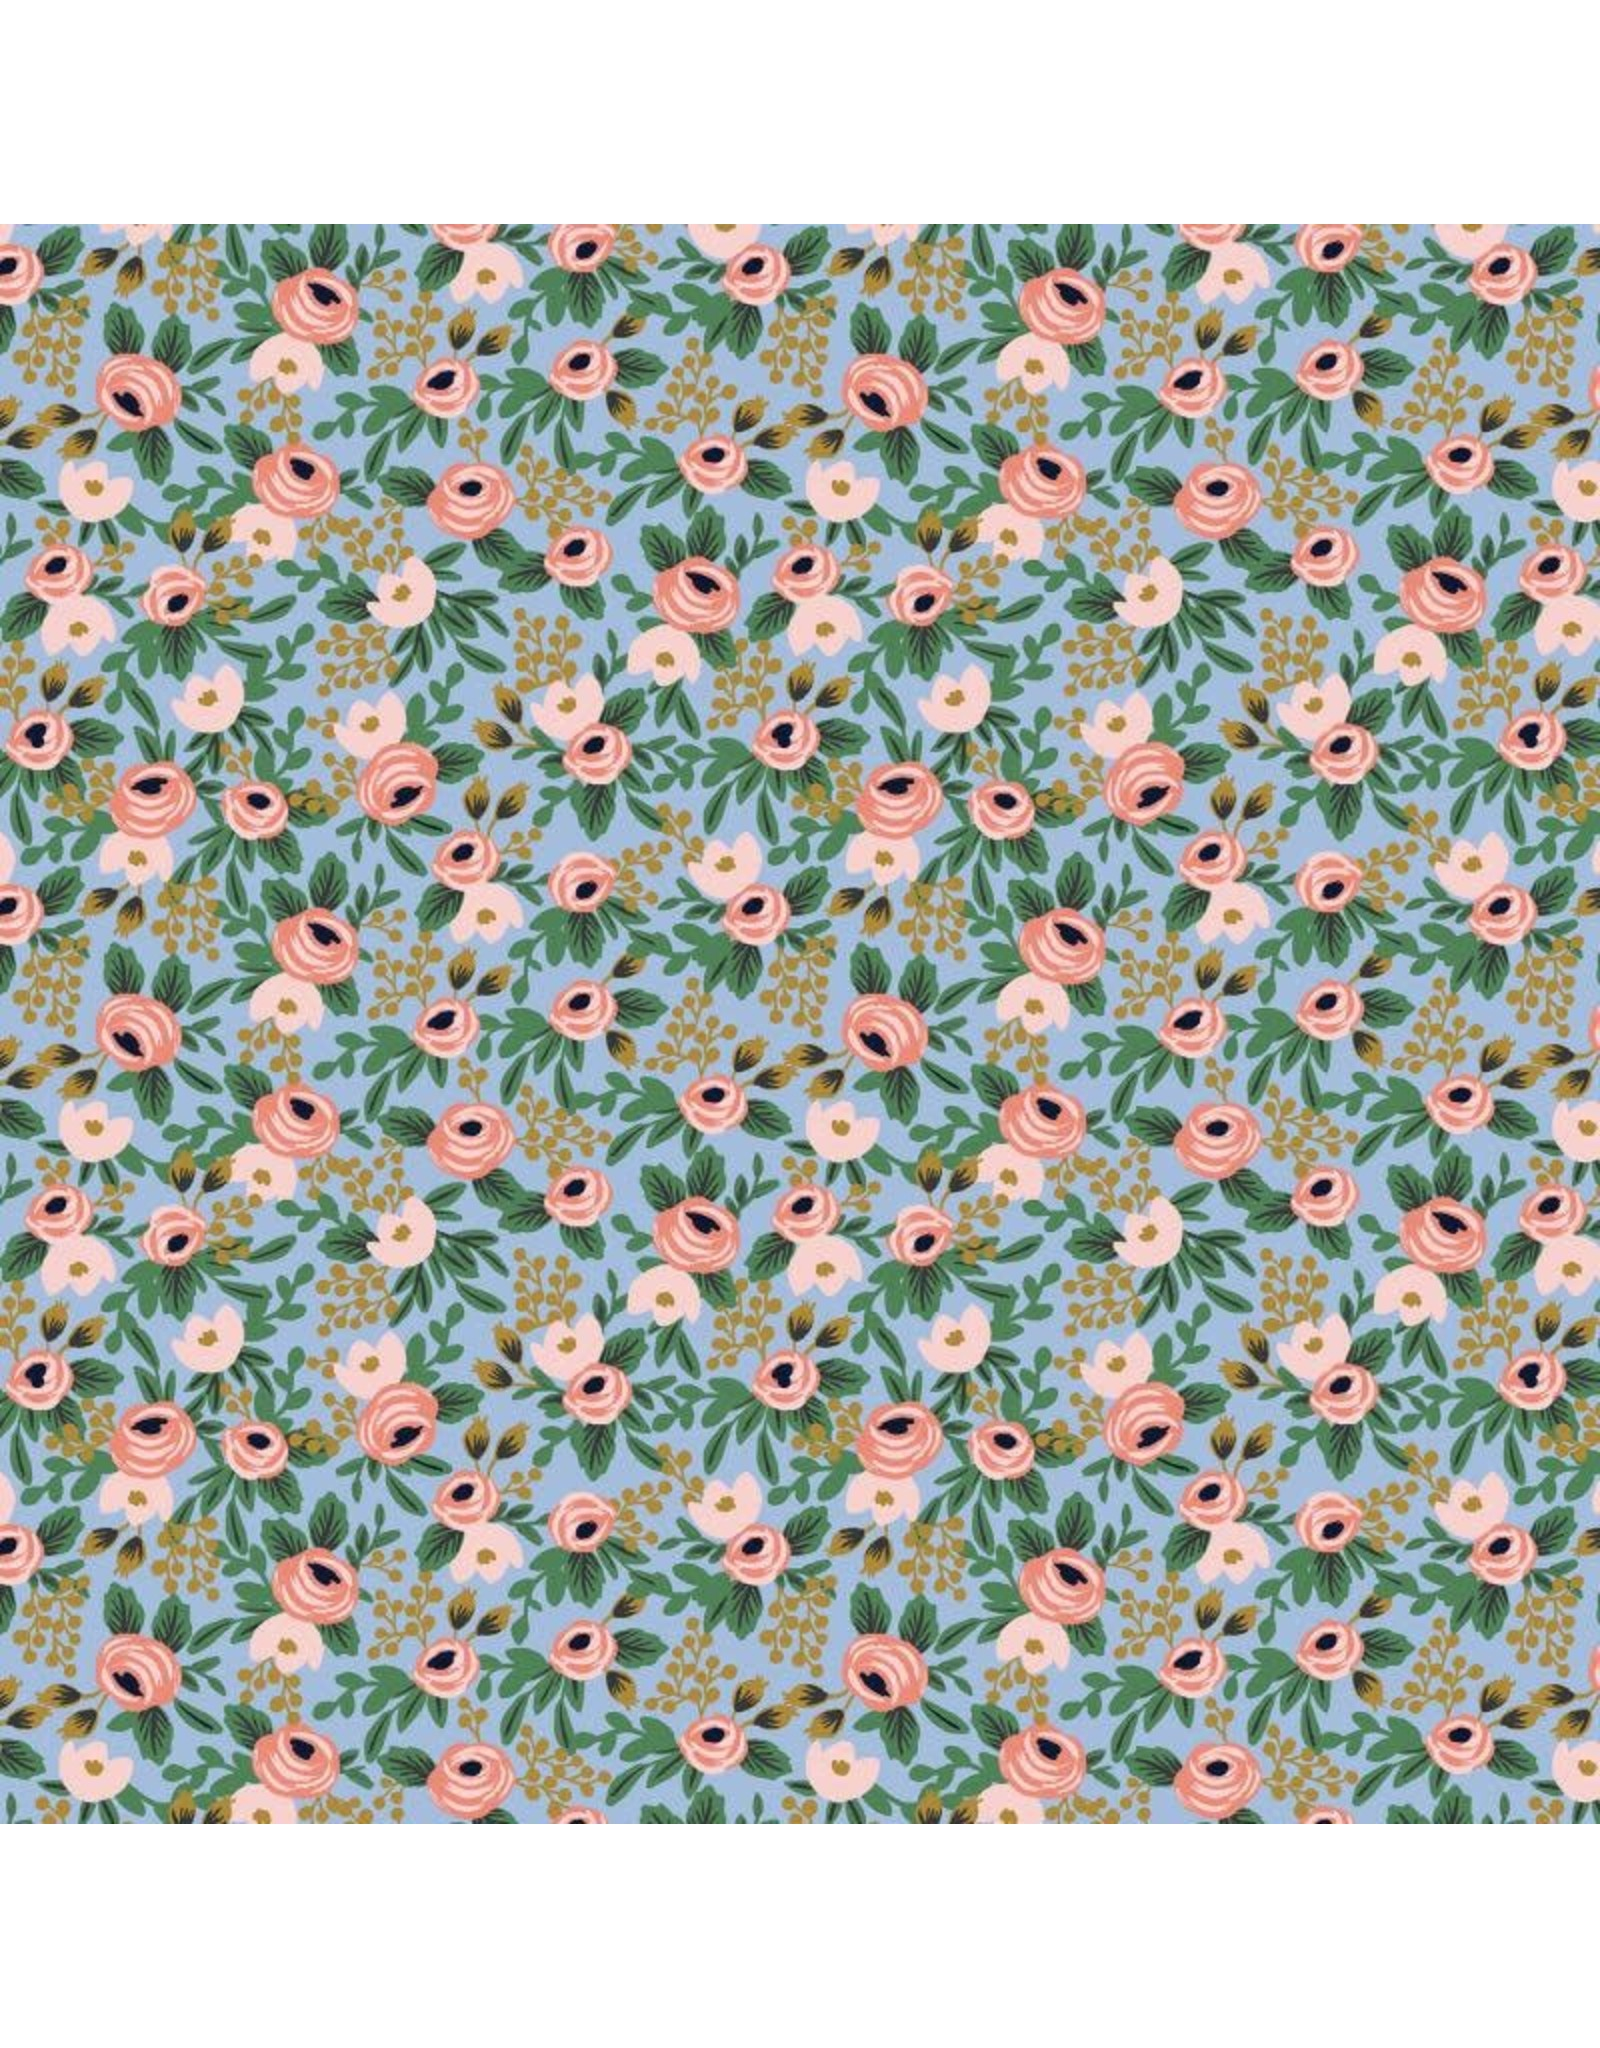 Rifle Paper Co. Garden Party, Rosa in Chambray with Metallic, Fabric Half-Yards RP305-CH4M